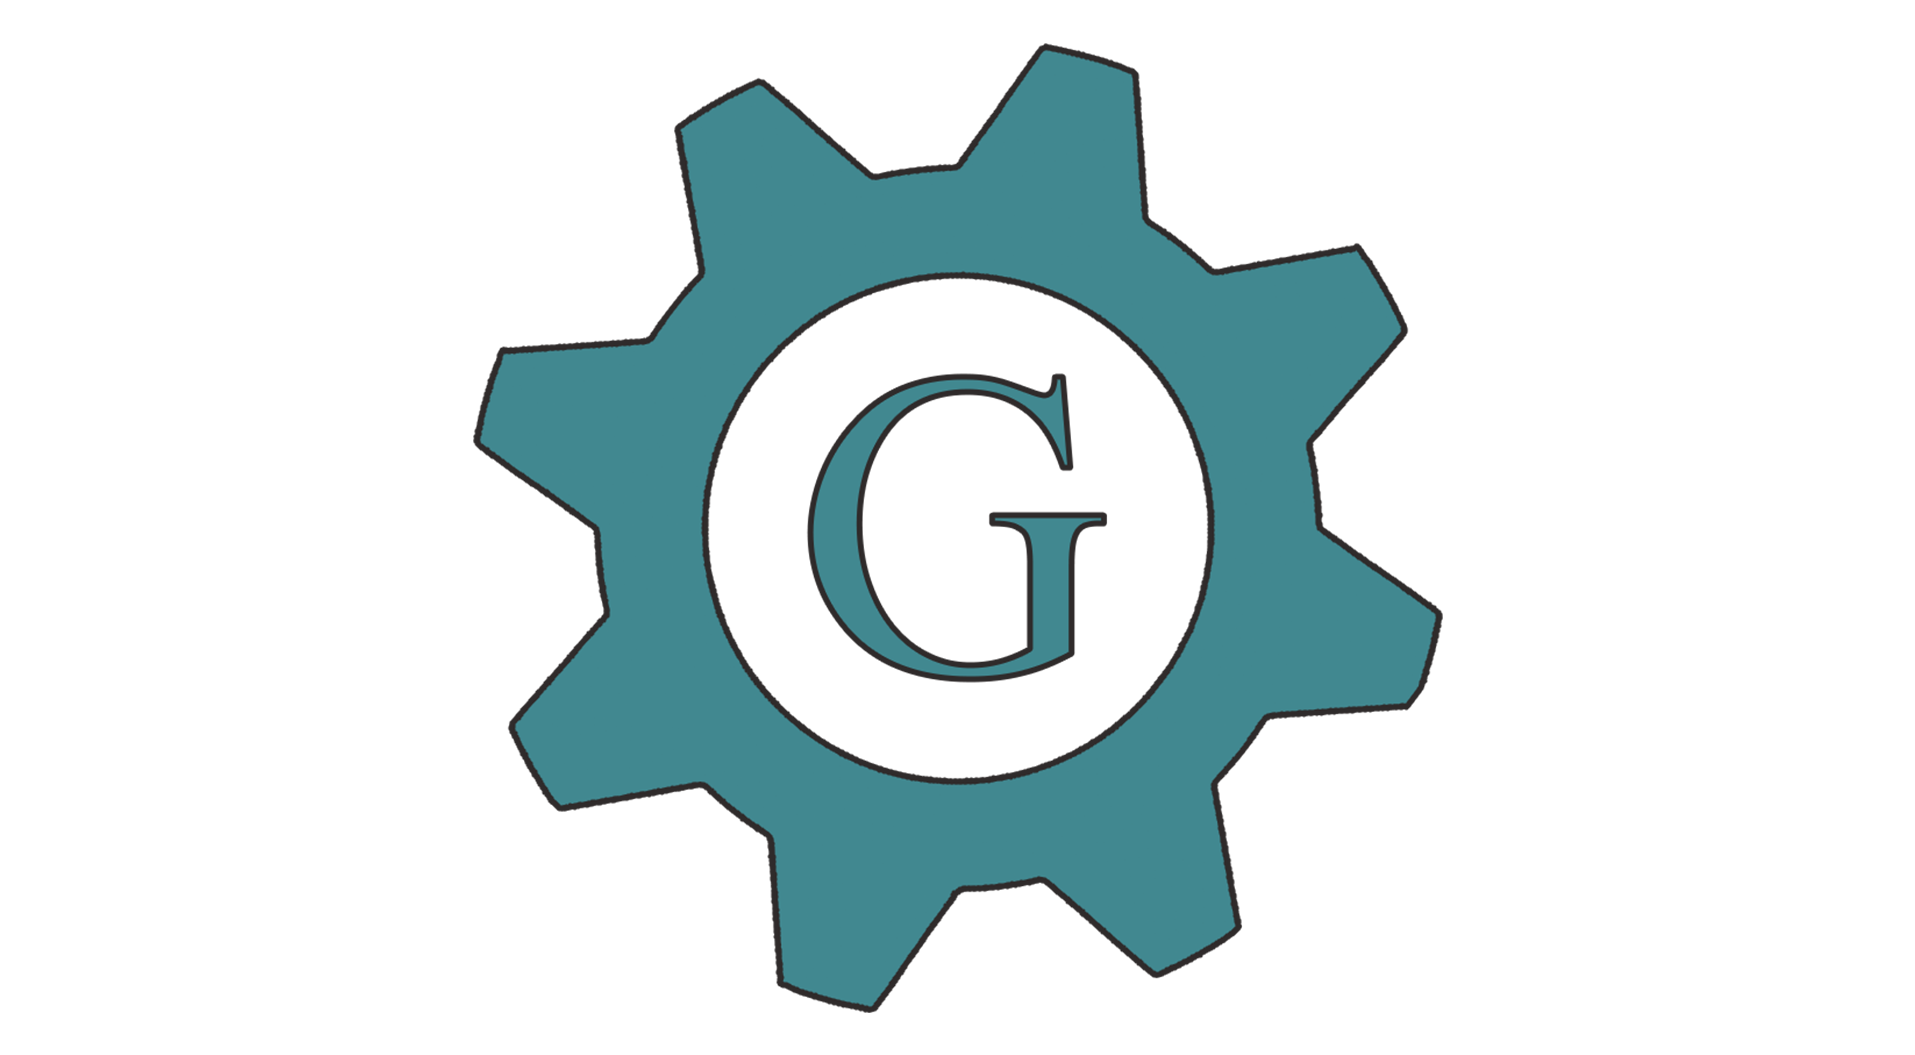 Gizmos GL - An extensive rendering tool for visualising code at runtime in Unity